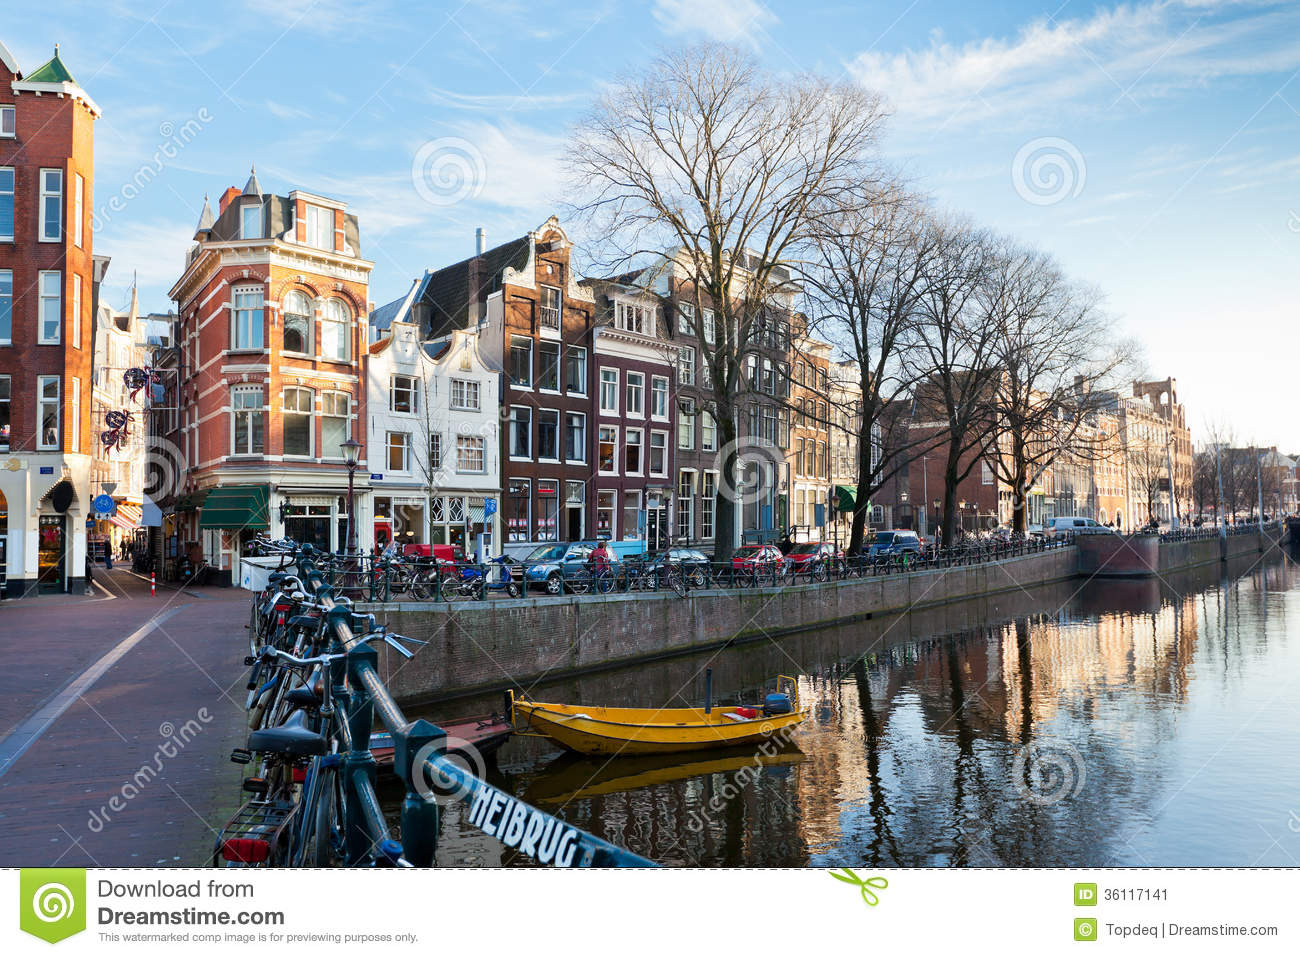 Dutch Dreams Amsterdam Canal Street View At Winter Stock Image - Image